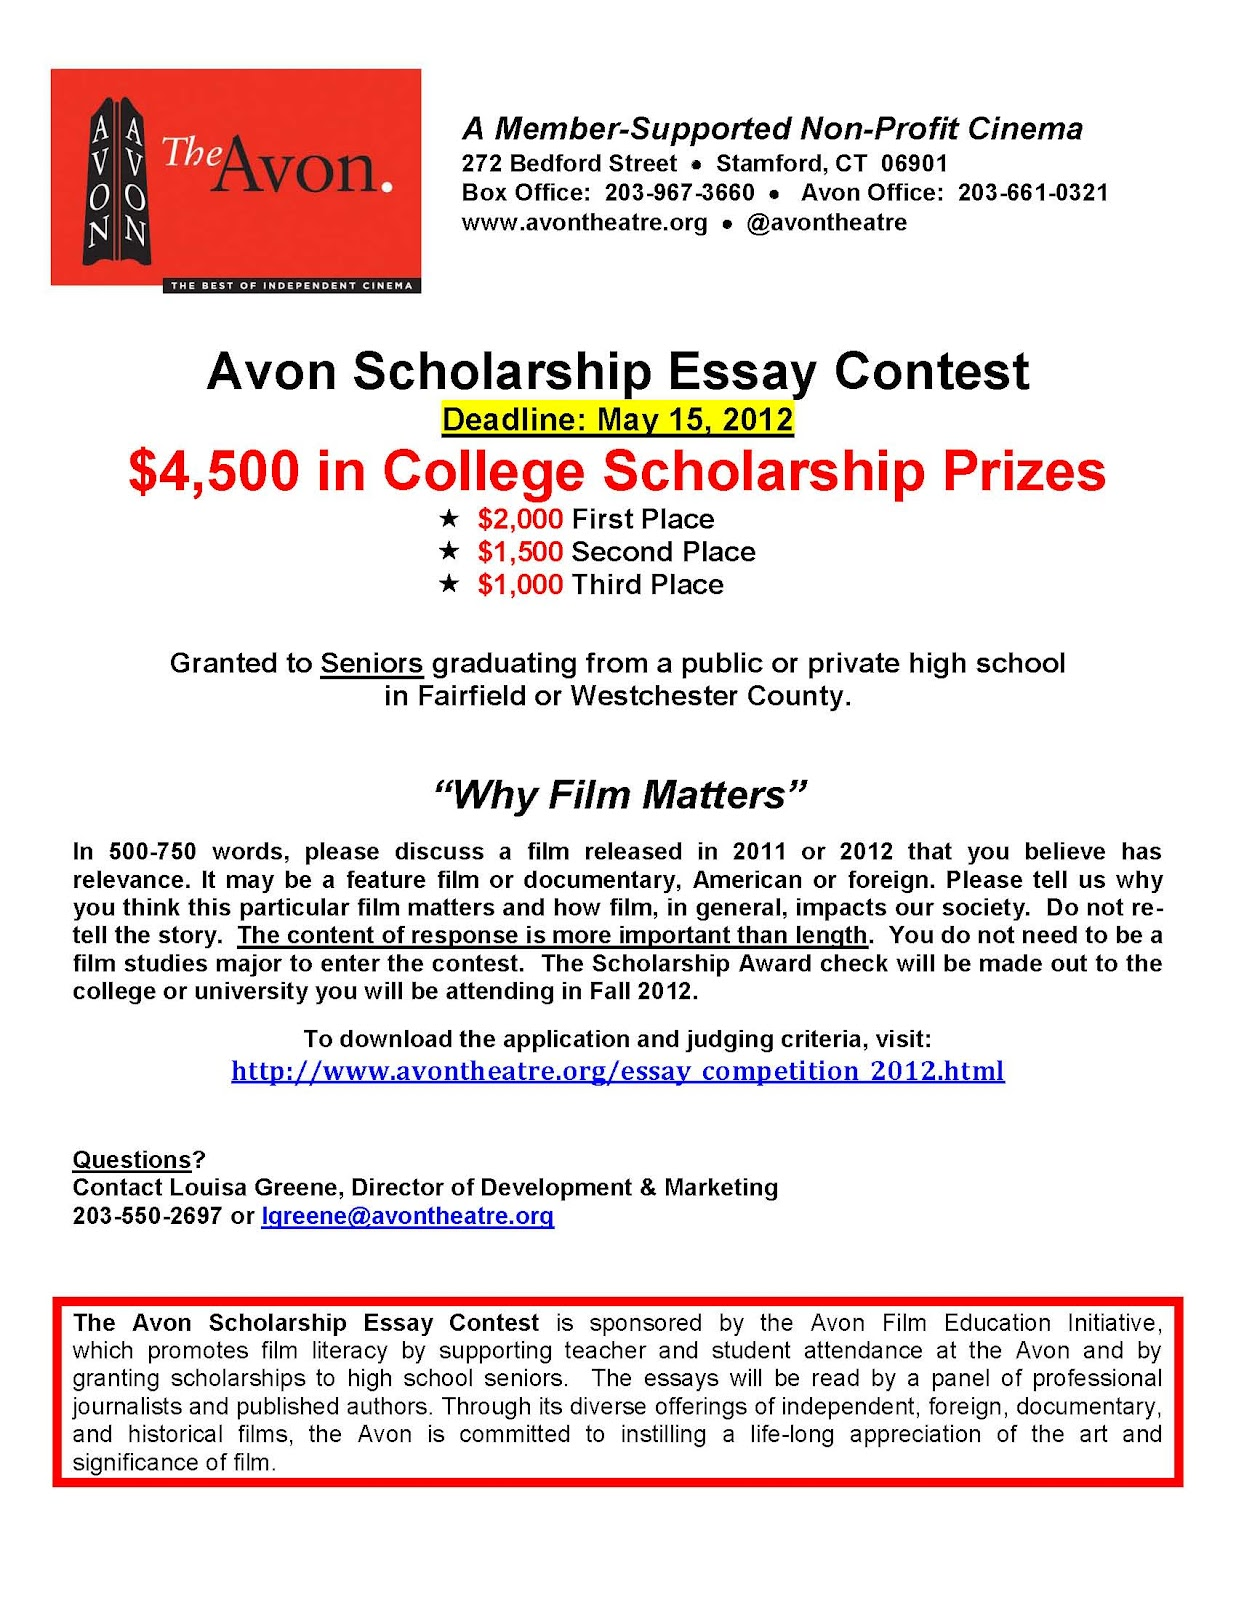 002 No Essay Collegeip Prowler Freeips For High School Seniors Avonscholarshipessaycontest2012 In Texas California Class Of Short Example Wondrous Scholarship Scholarships Freshman 2019 Full